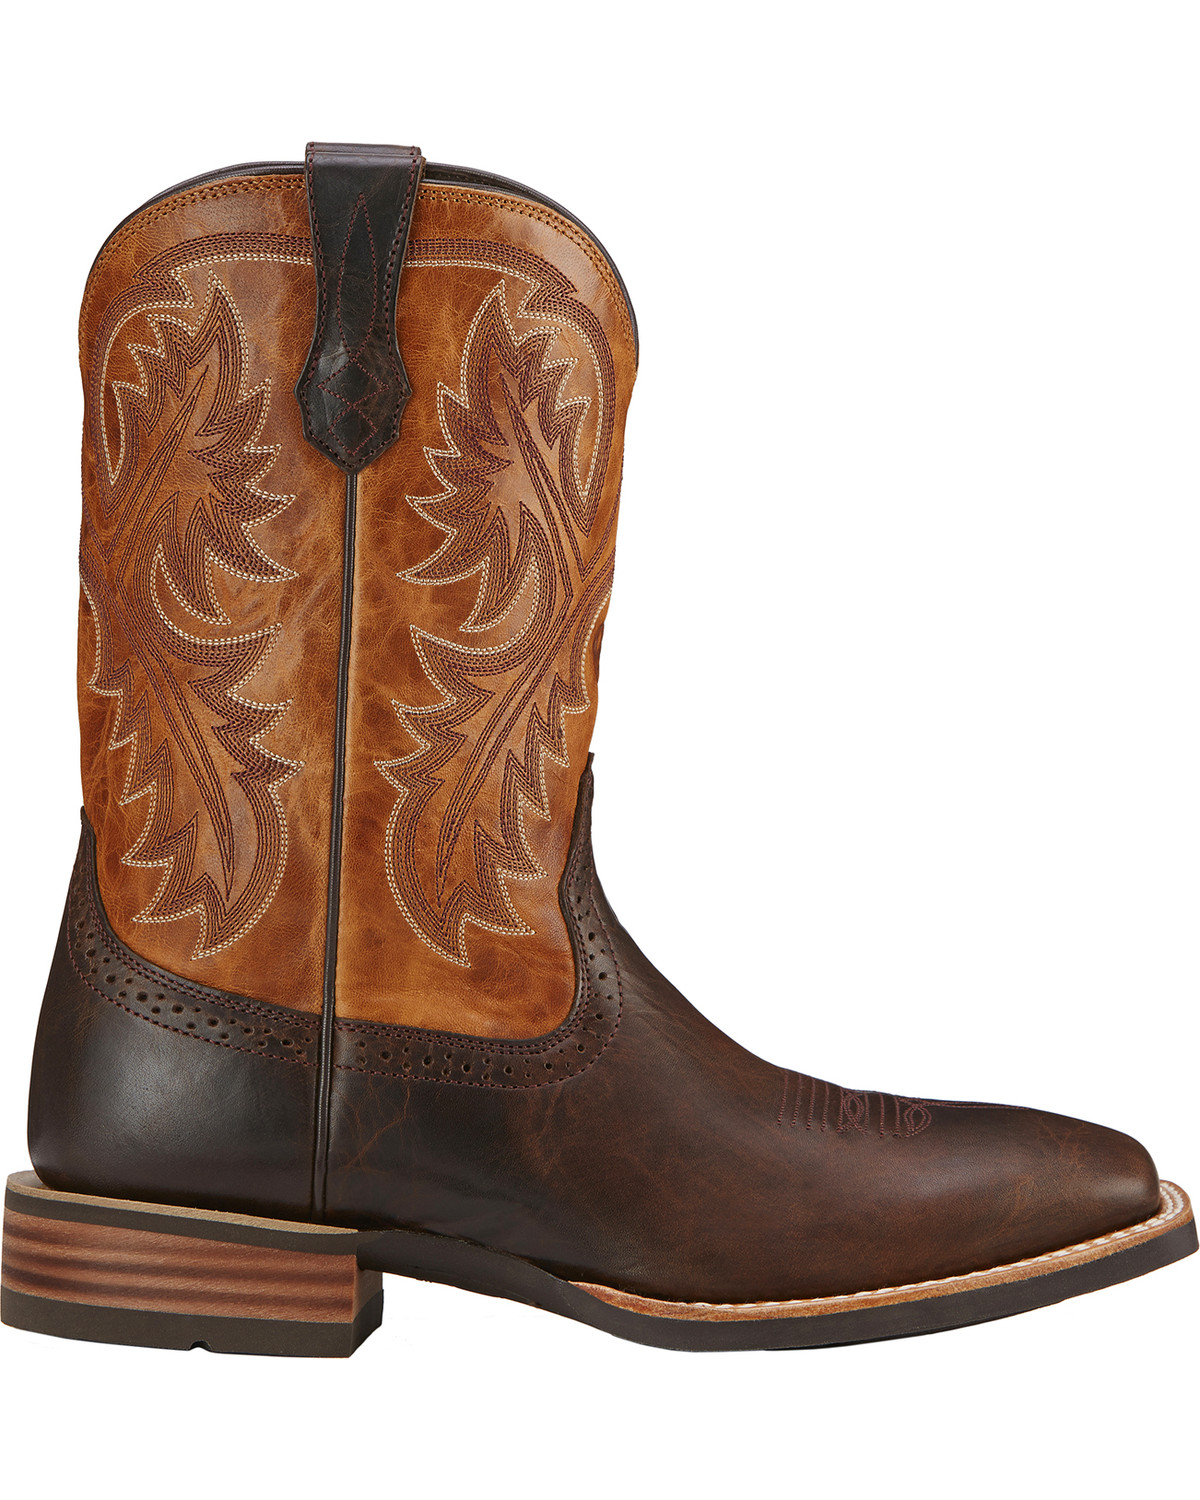 Ariat Quickdraw Cowboy Boots - Square Toe | Sheplers